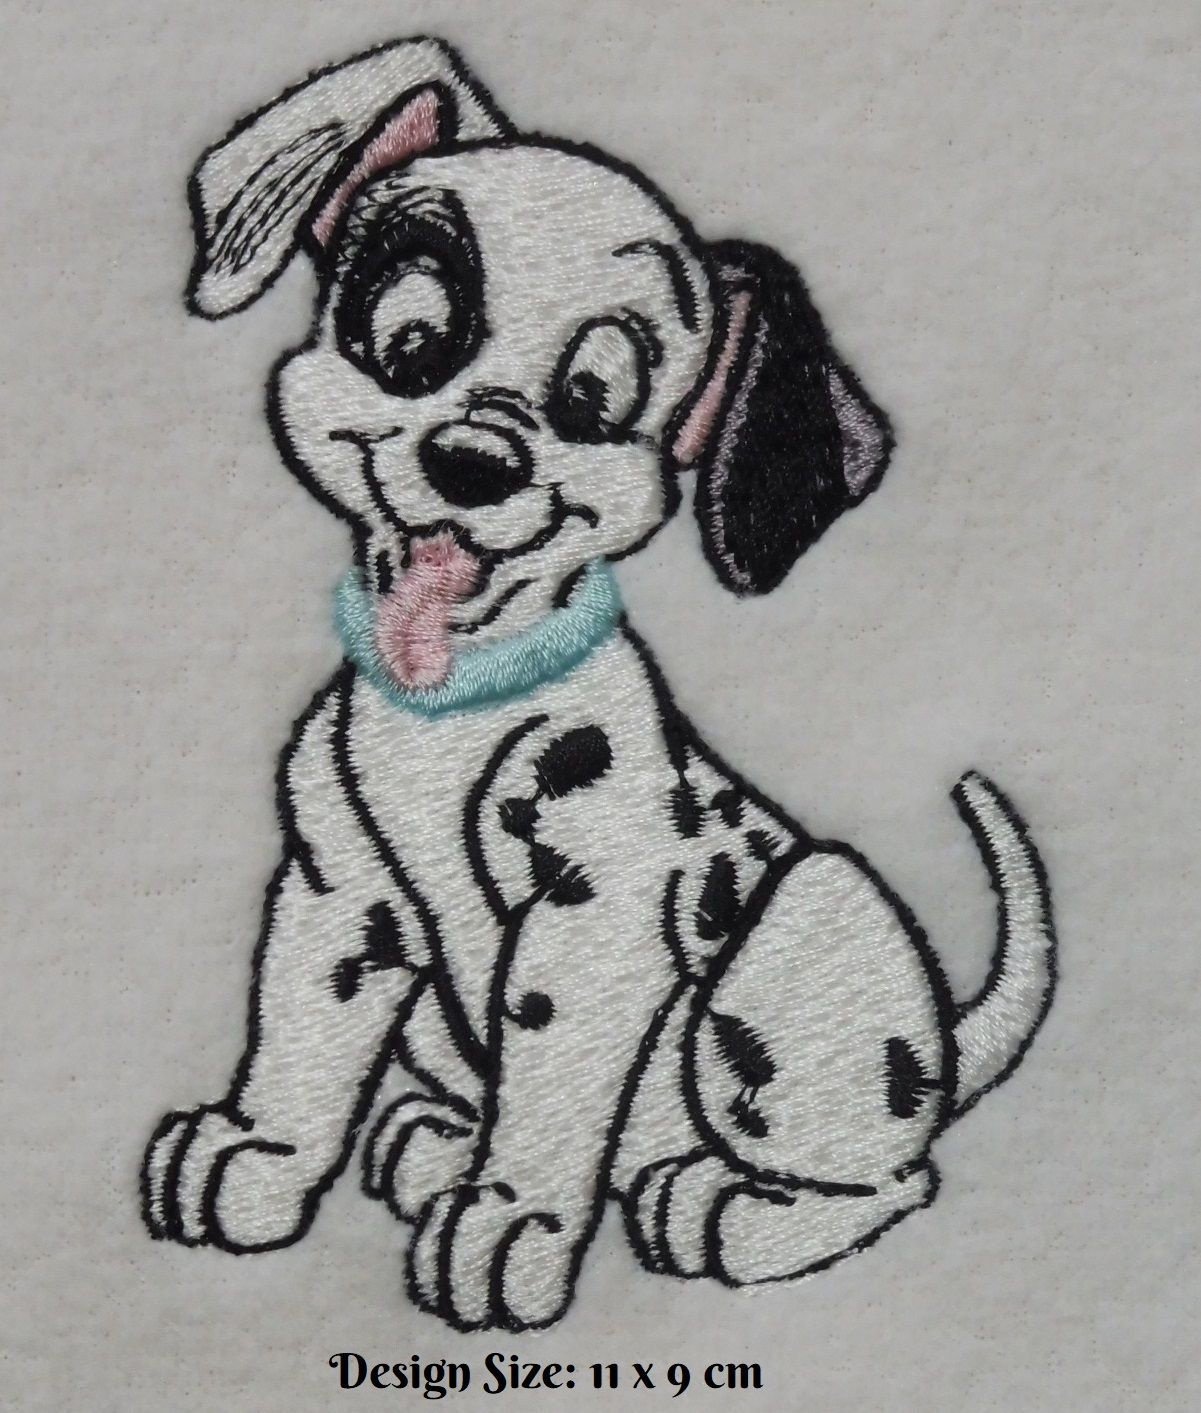 101 Dalmatian Baby Blanket Embroidered Personalised Gift In 2020 Personalized Fleece Baby Blanket Fleece Baby Blankets Dalmatian Puppy